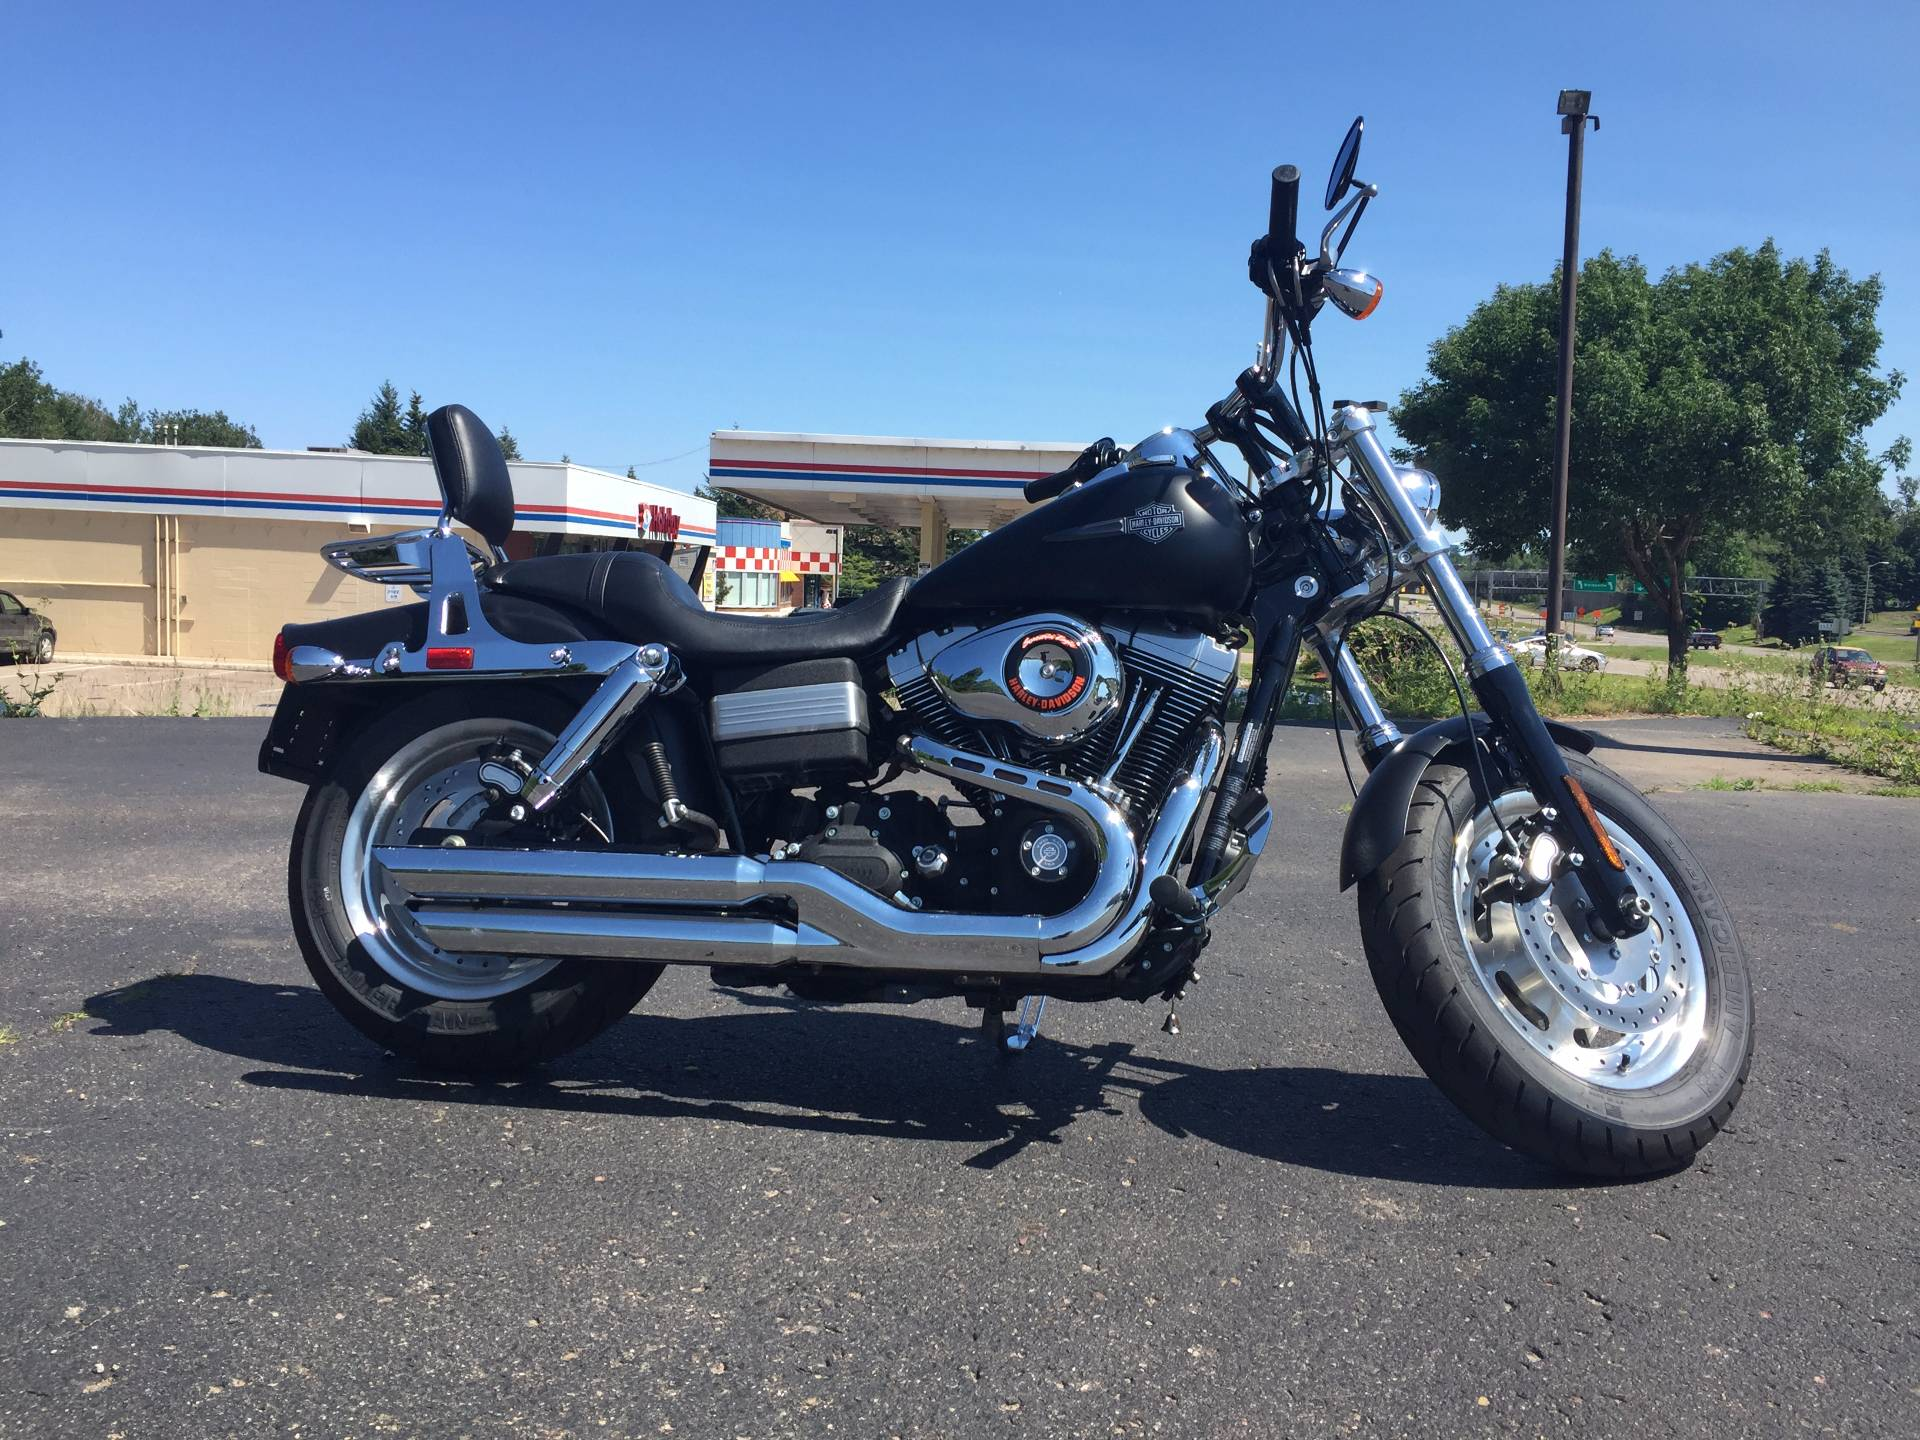 2010 Harley-Davidson FATBOB in Marquette, Michigan